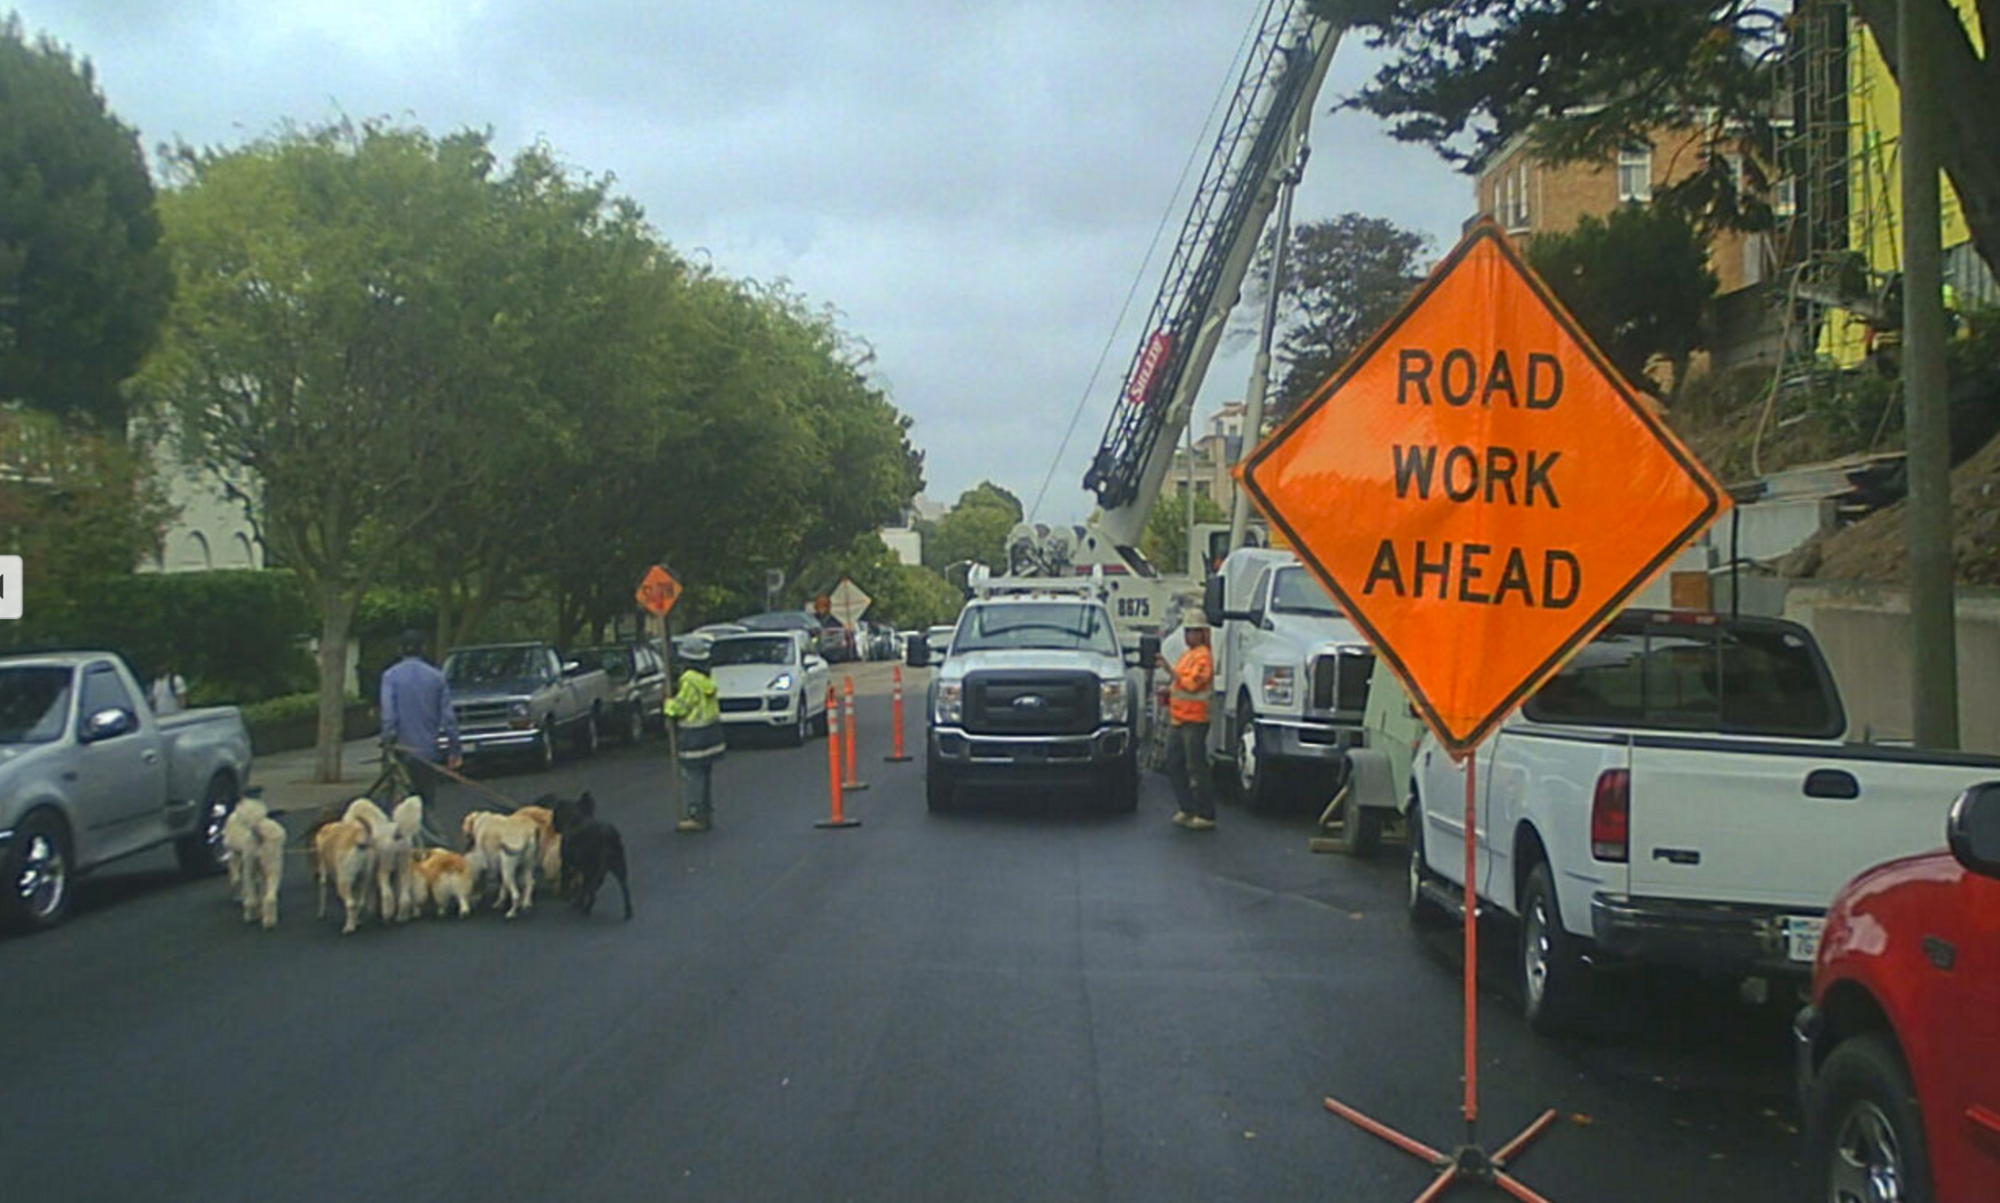 A self-driving car on a San Francisco street is confronted by roadwork and a dogwalker and his pack.